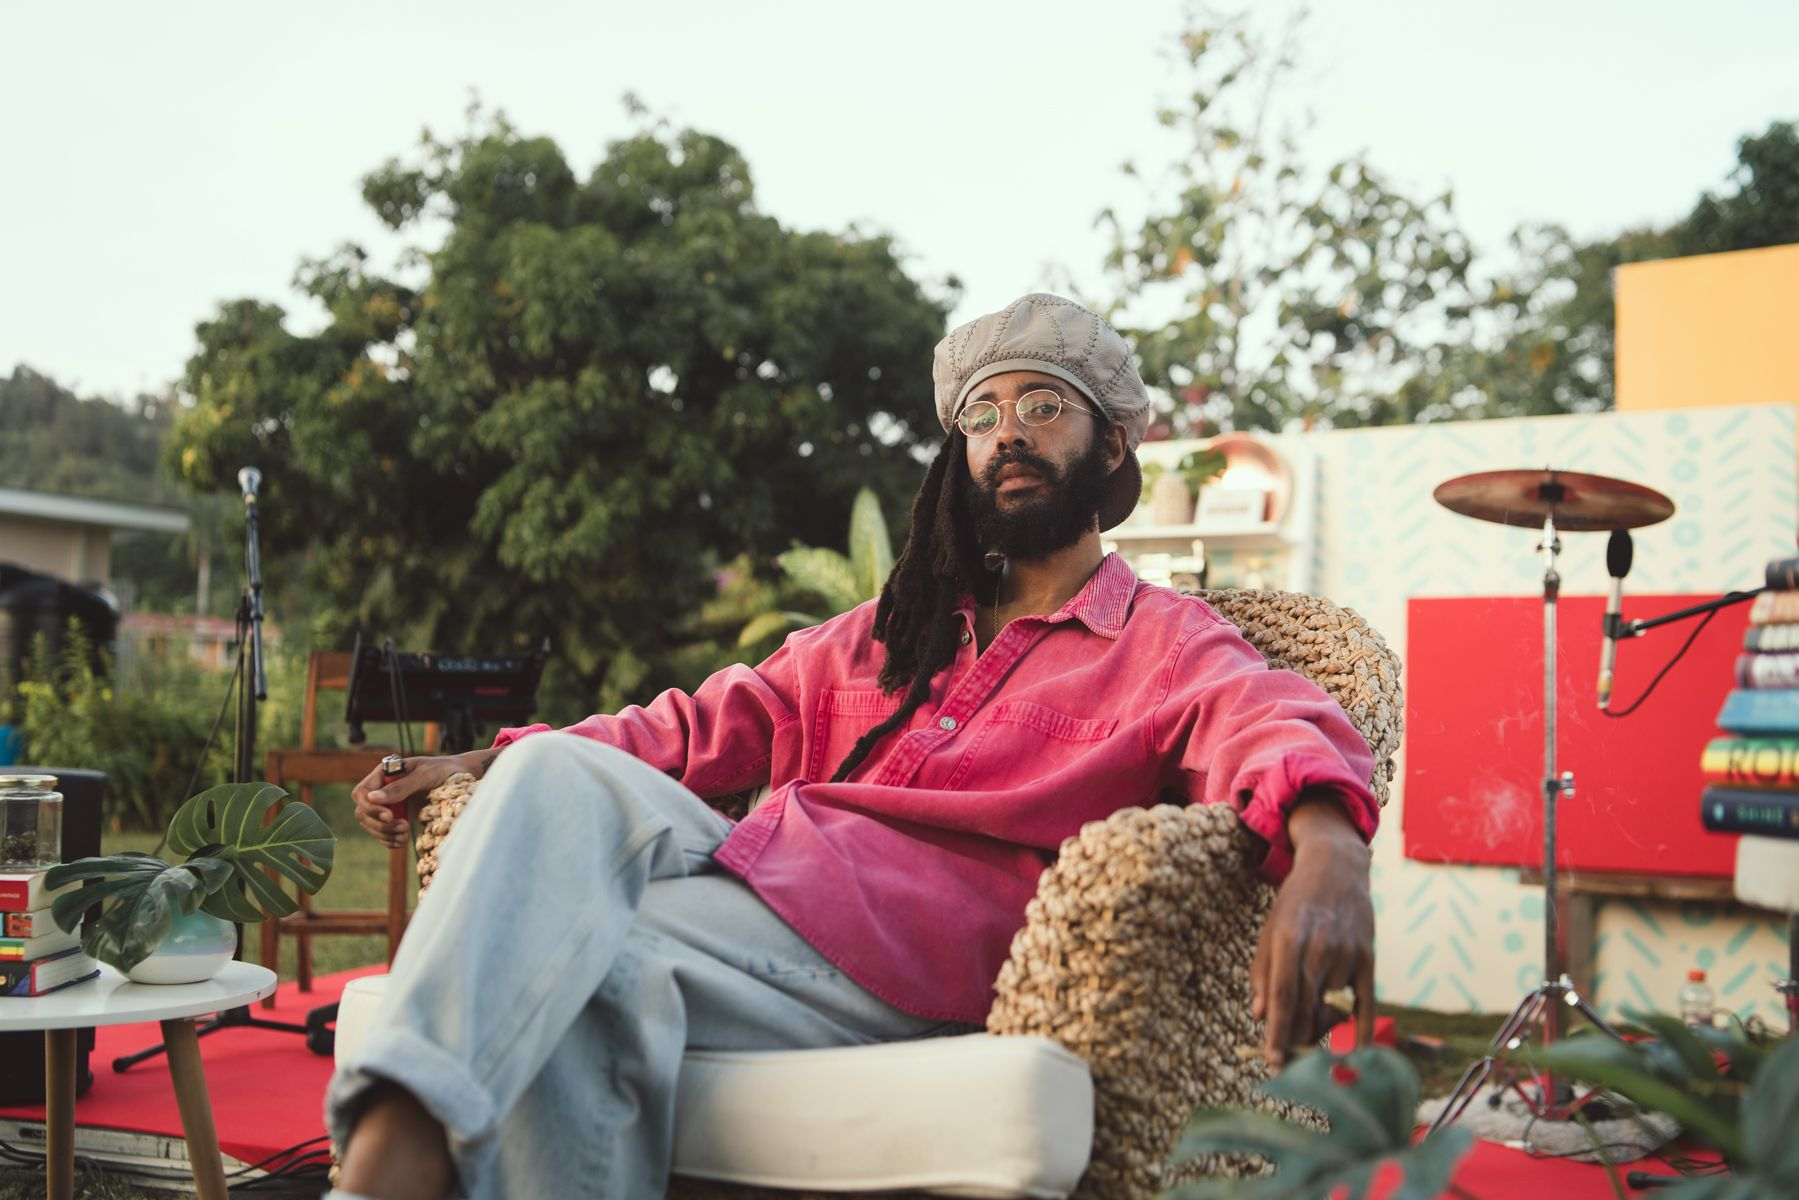 Protoje - Righteous | Tune des Tages: ein Video ohne Schnitte | The Future of Reggae #2